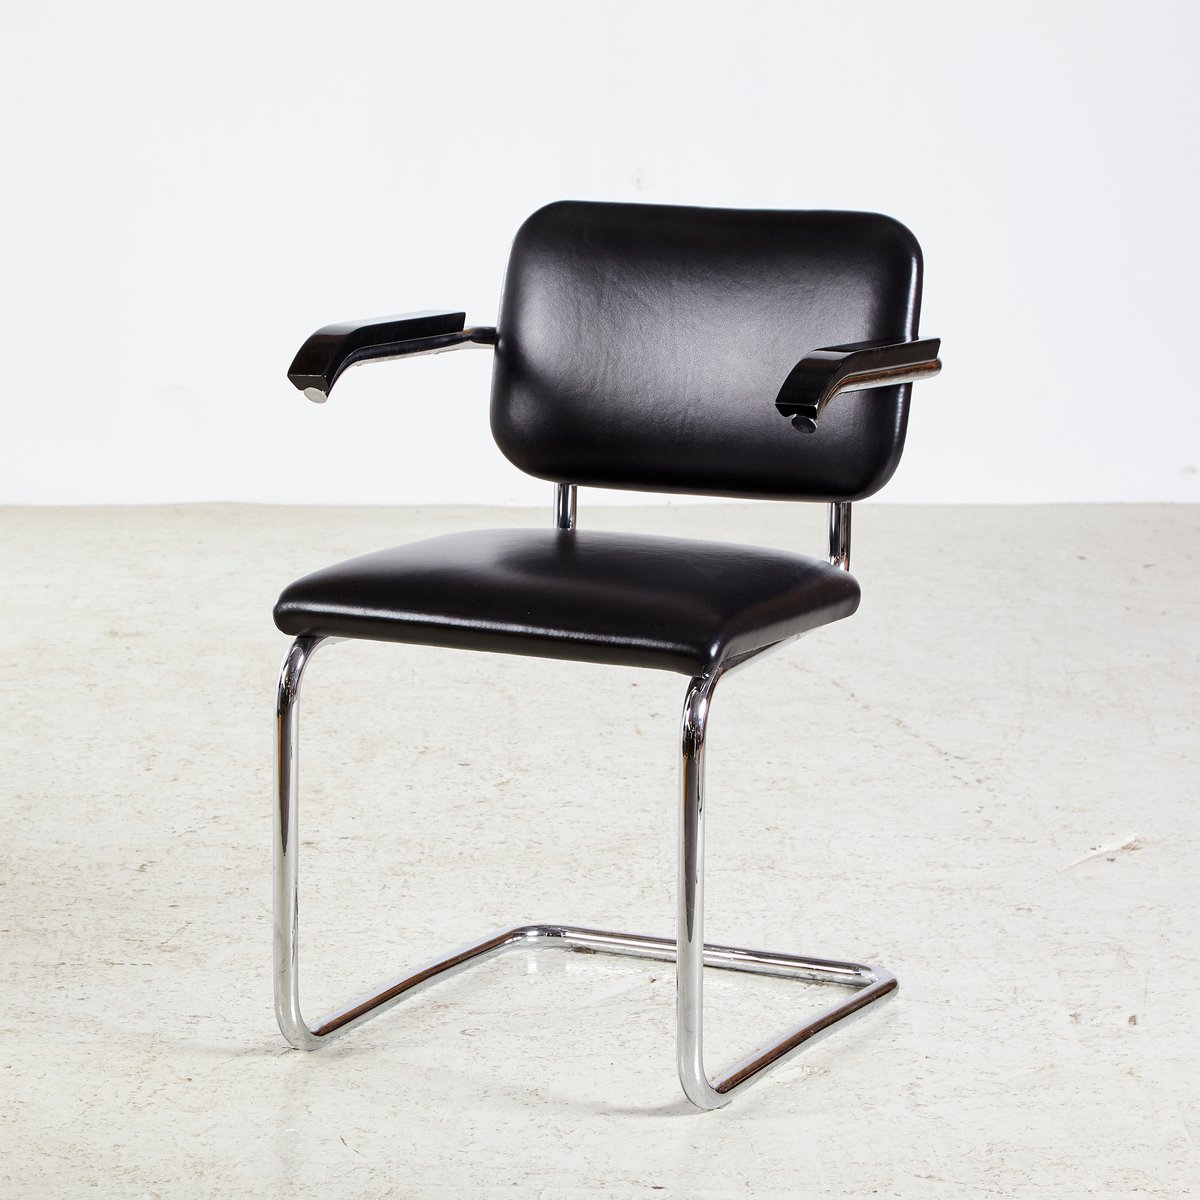 marcel breuer cesca chair with armrests posture care facebook chrome framed leather by for knoll inc price per piece